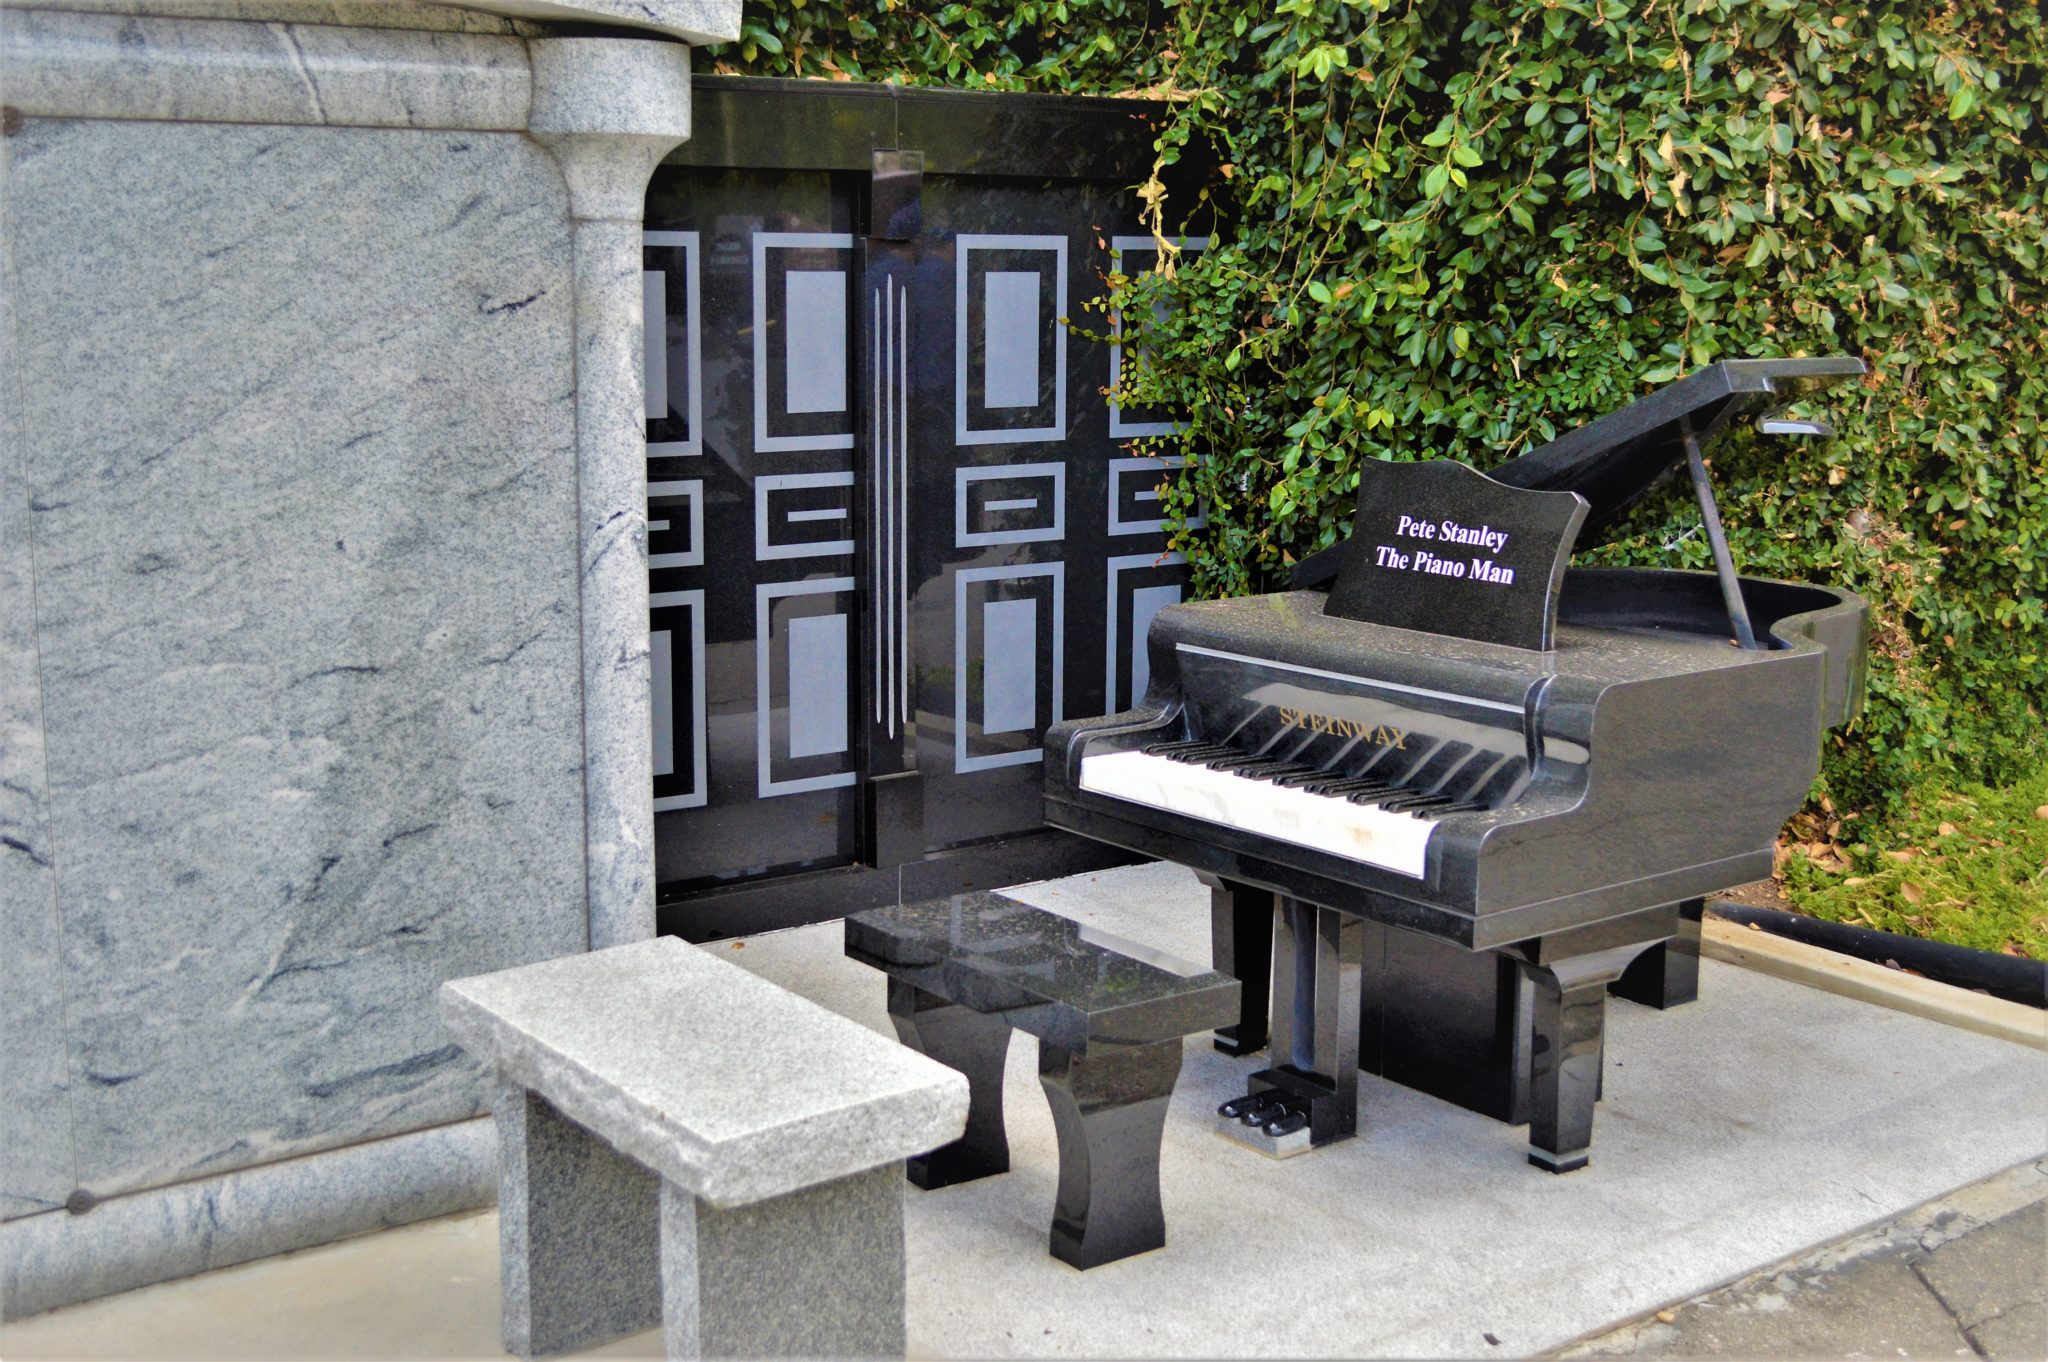 Pete Stanley piano man grave, Hollywood cemetery, free things to see in Los Angeles